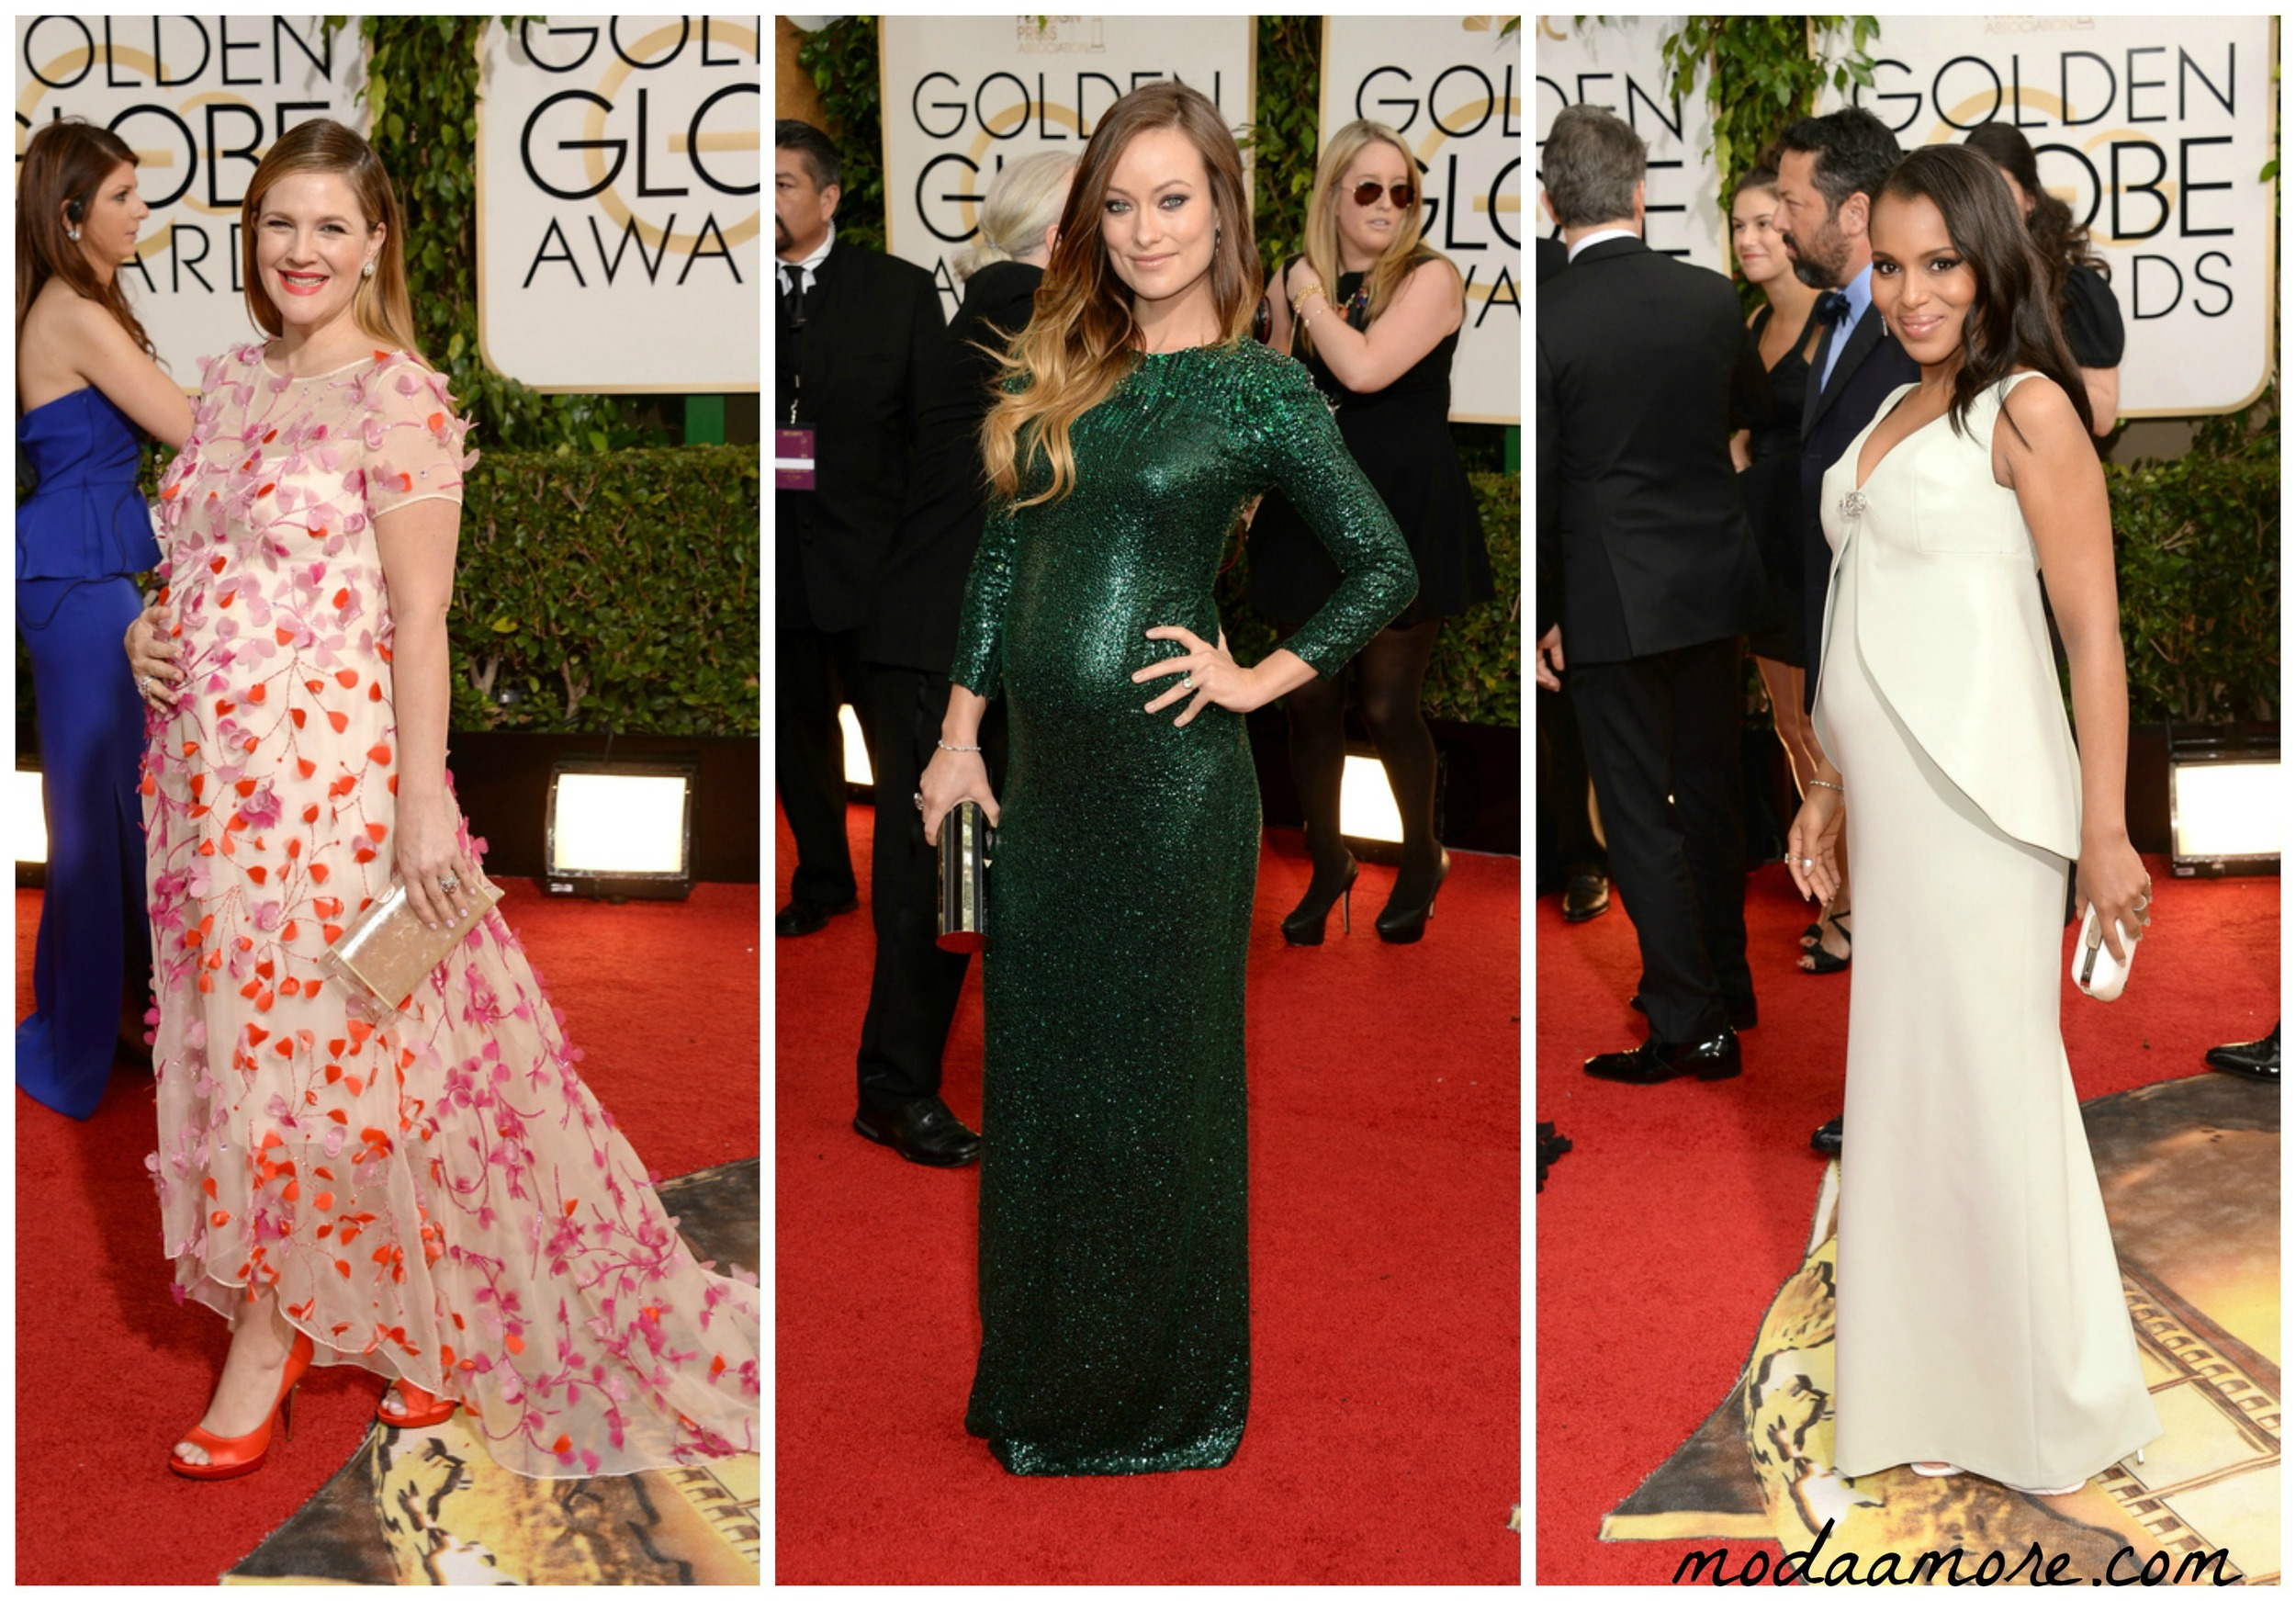 Drew Barrymore in Monique Lhullier, Olivia Wilde in Gucci, Kerry Washington in Balenciaga